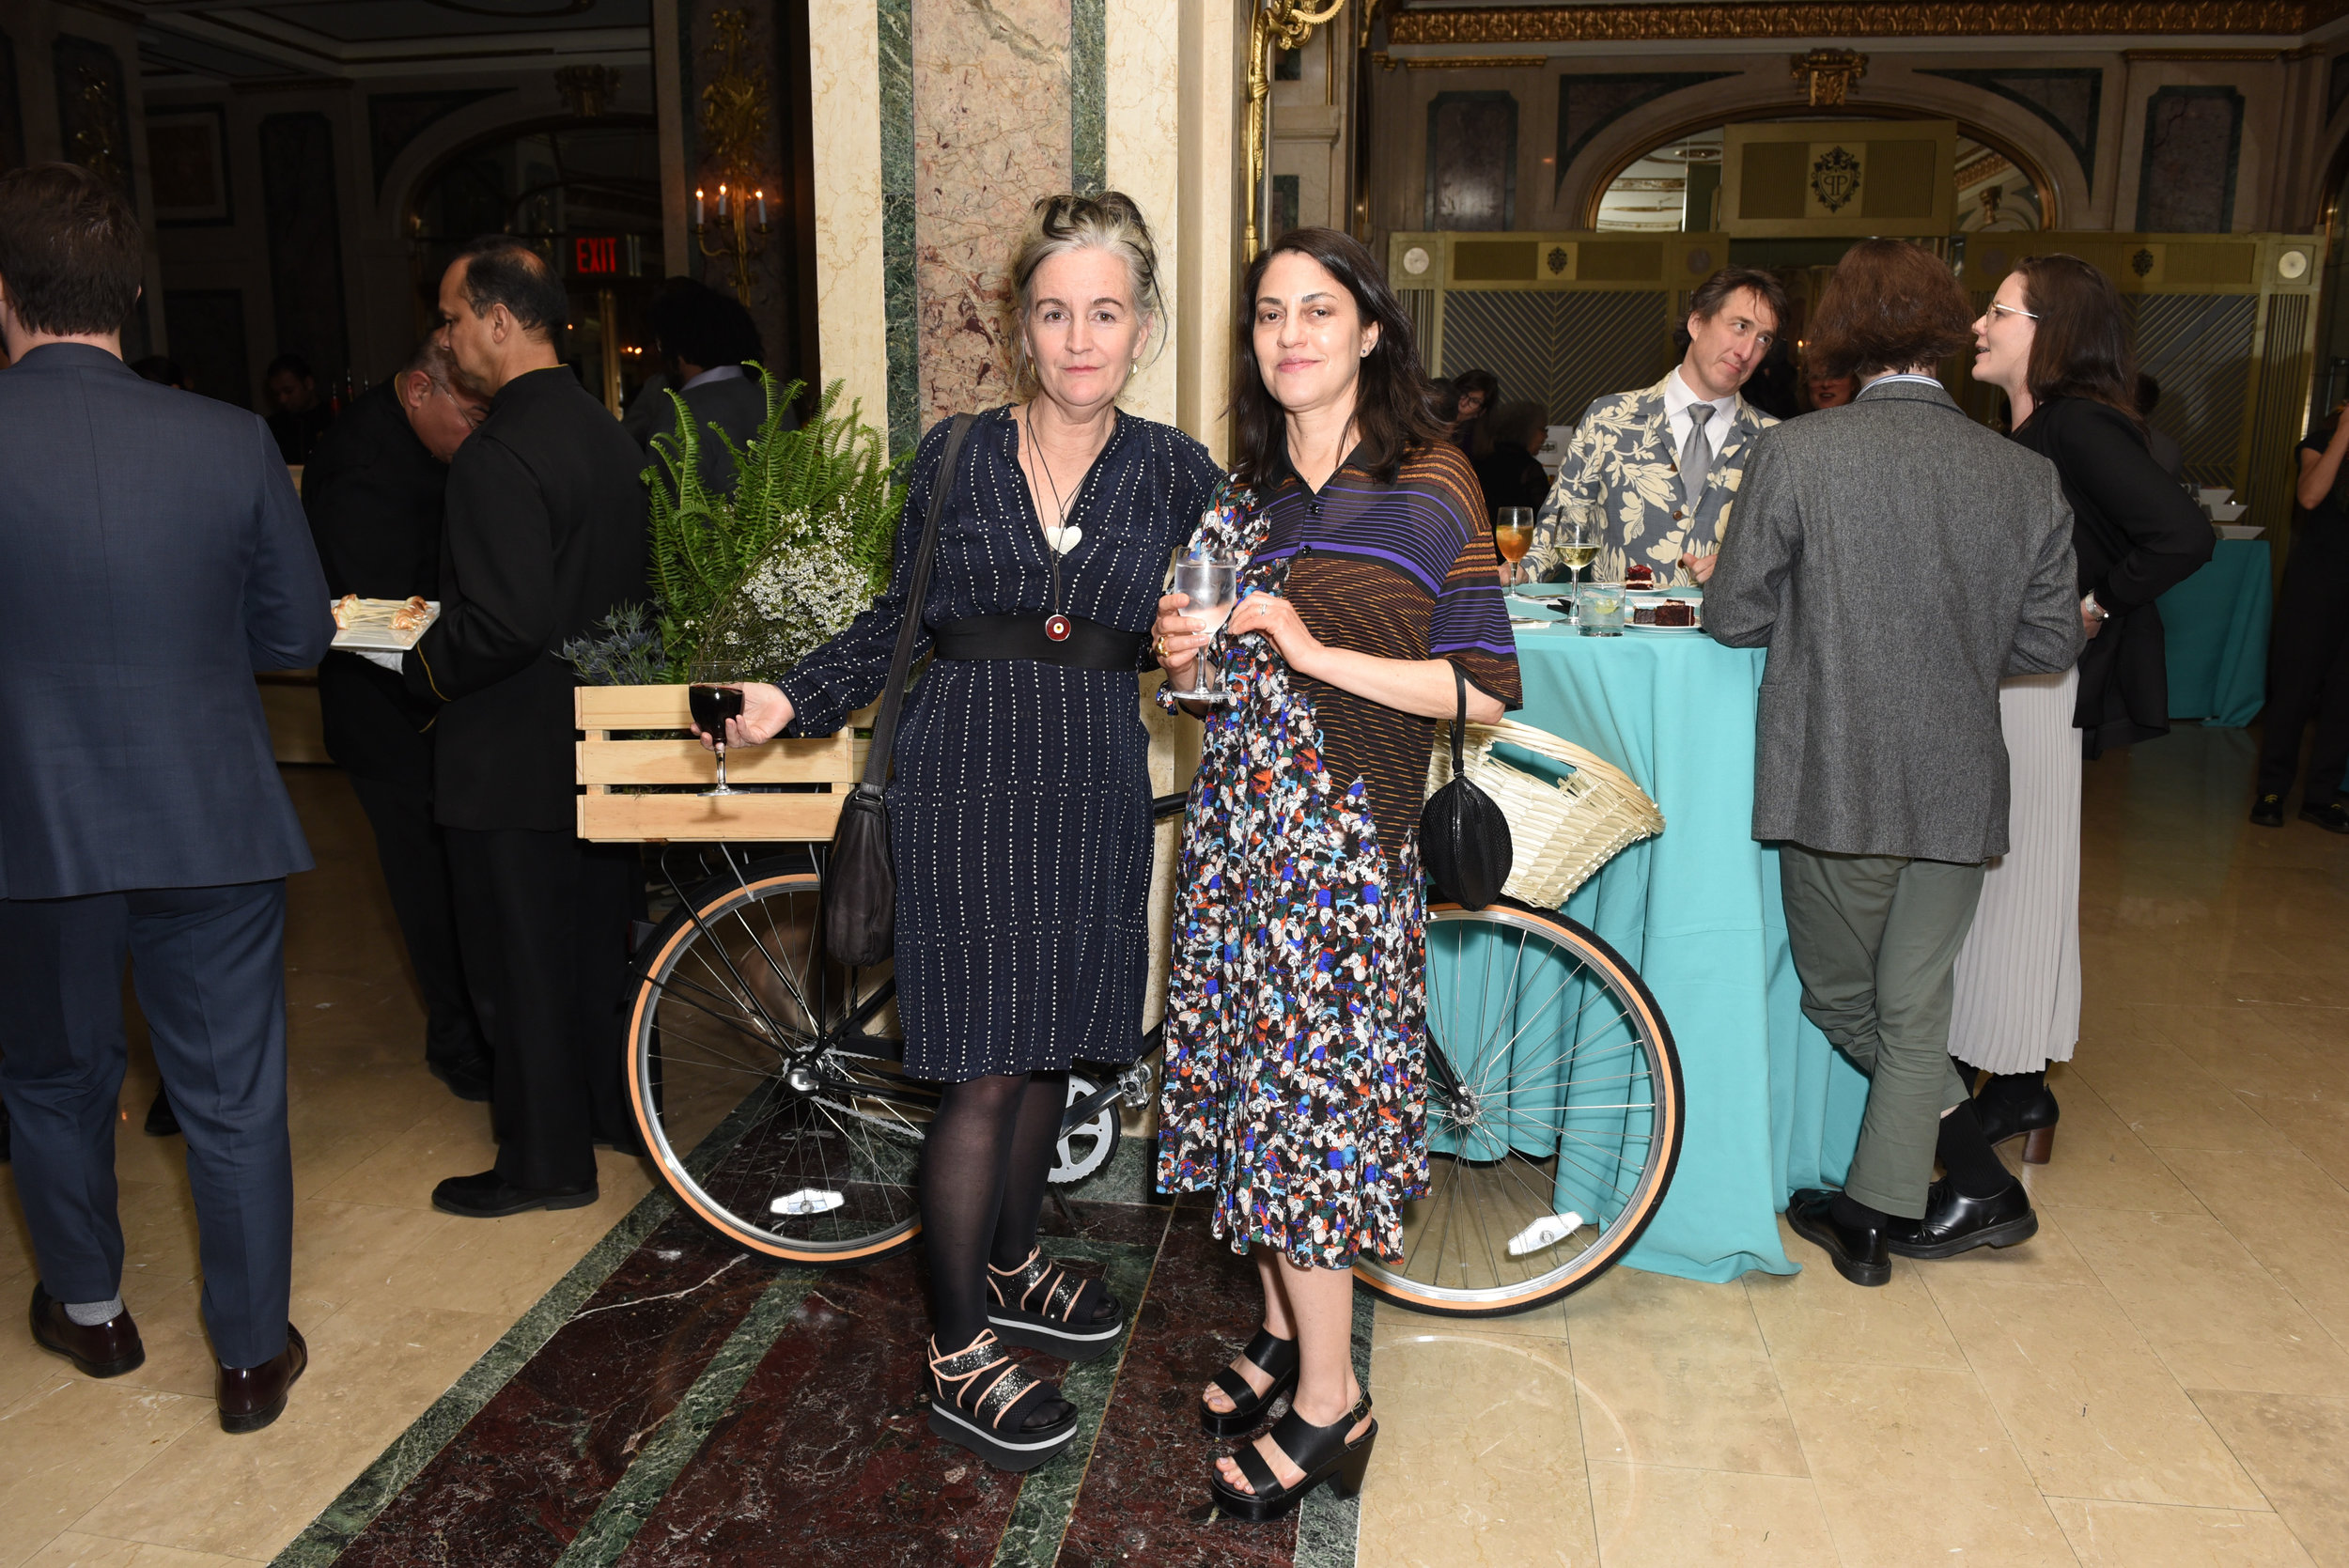 Suzanne McQuillen, Alex Pearlstein==